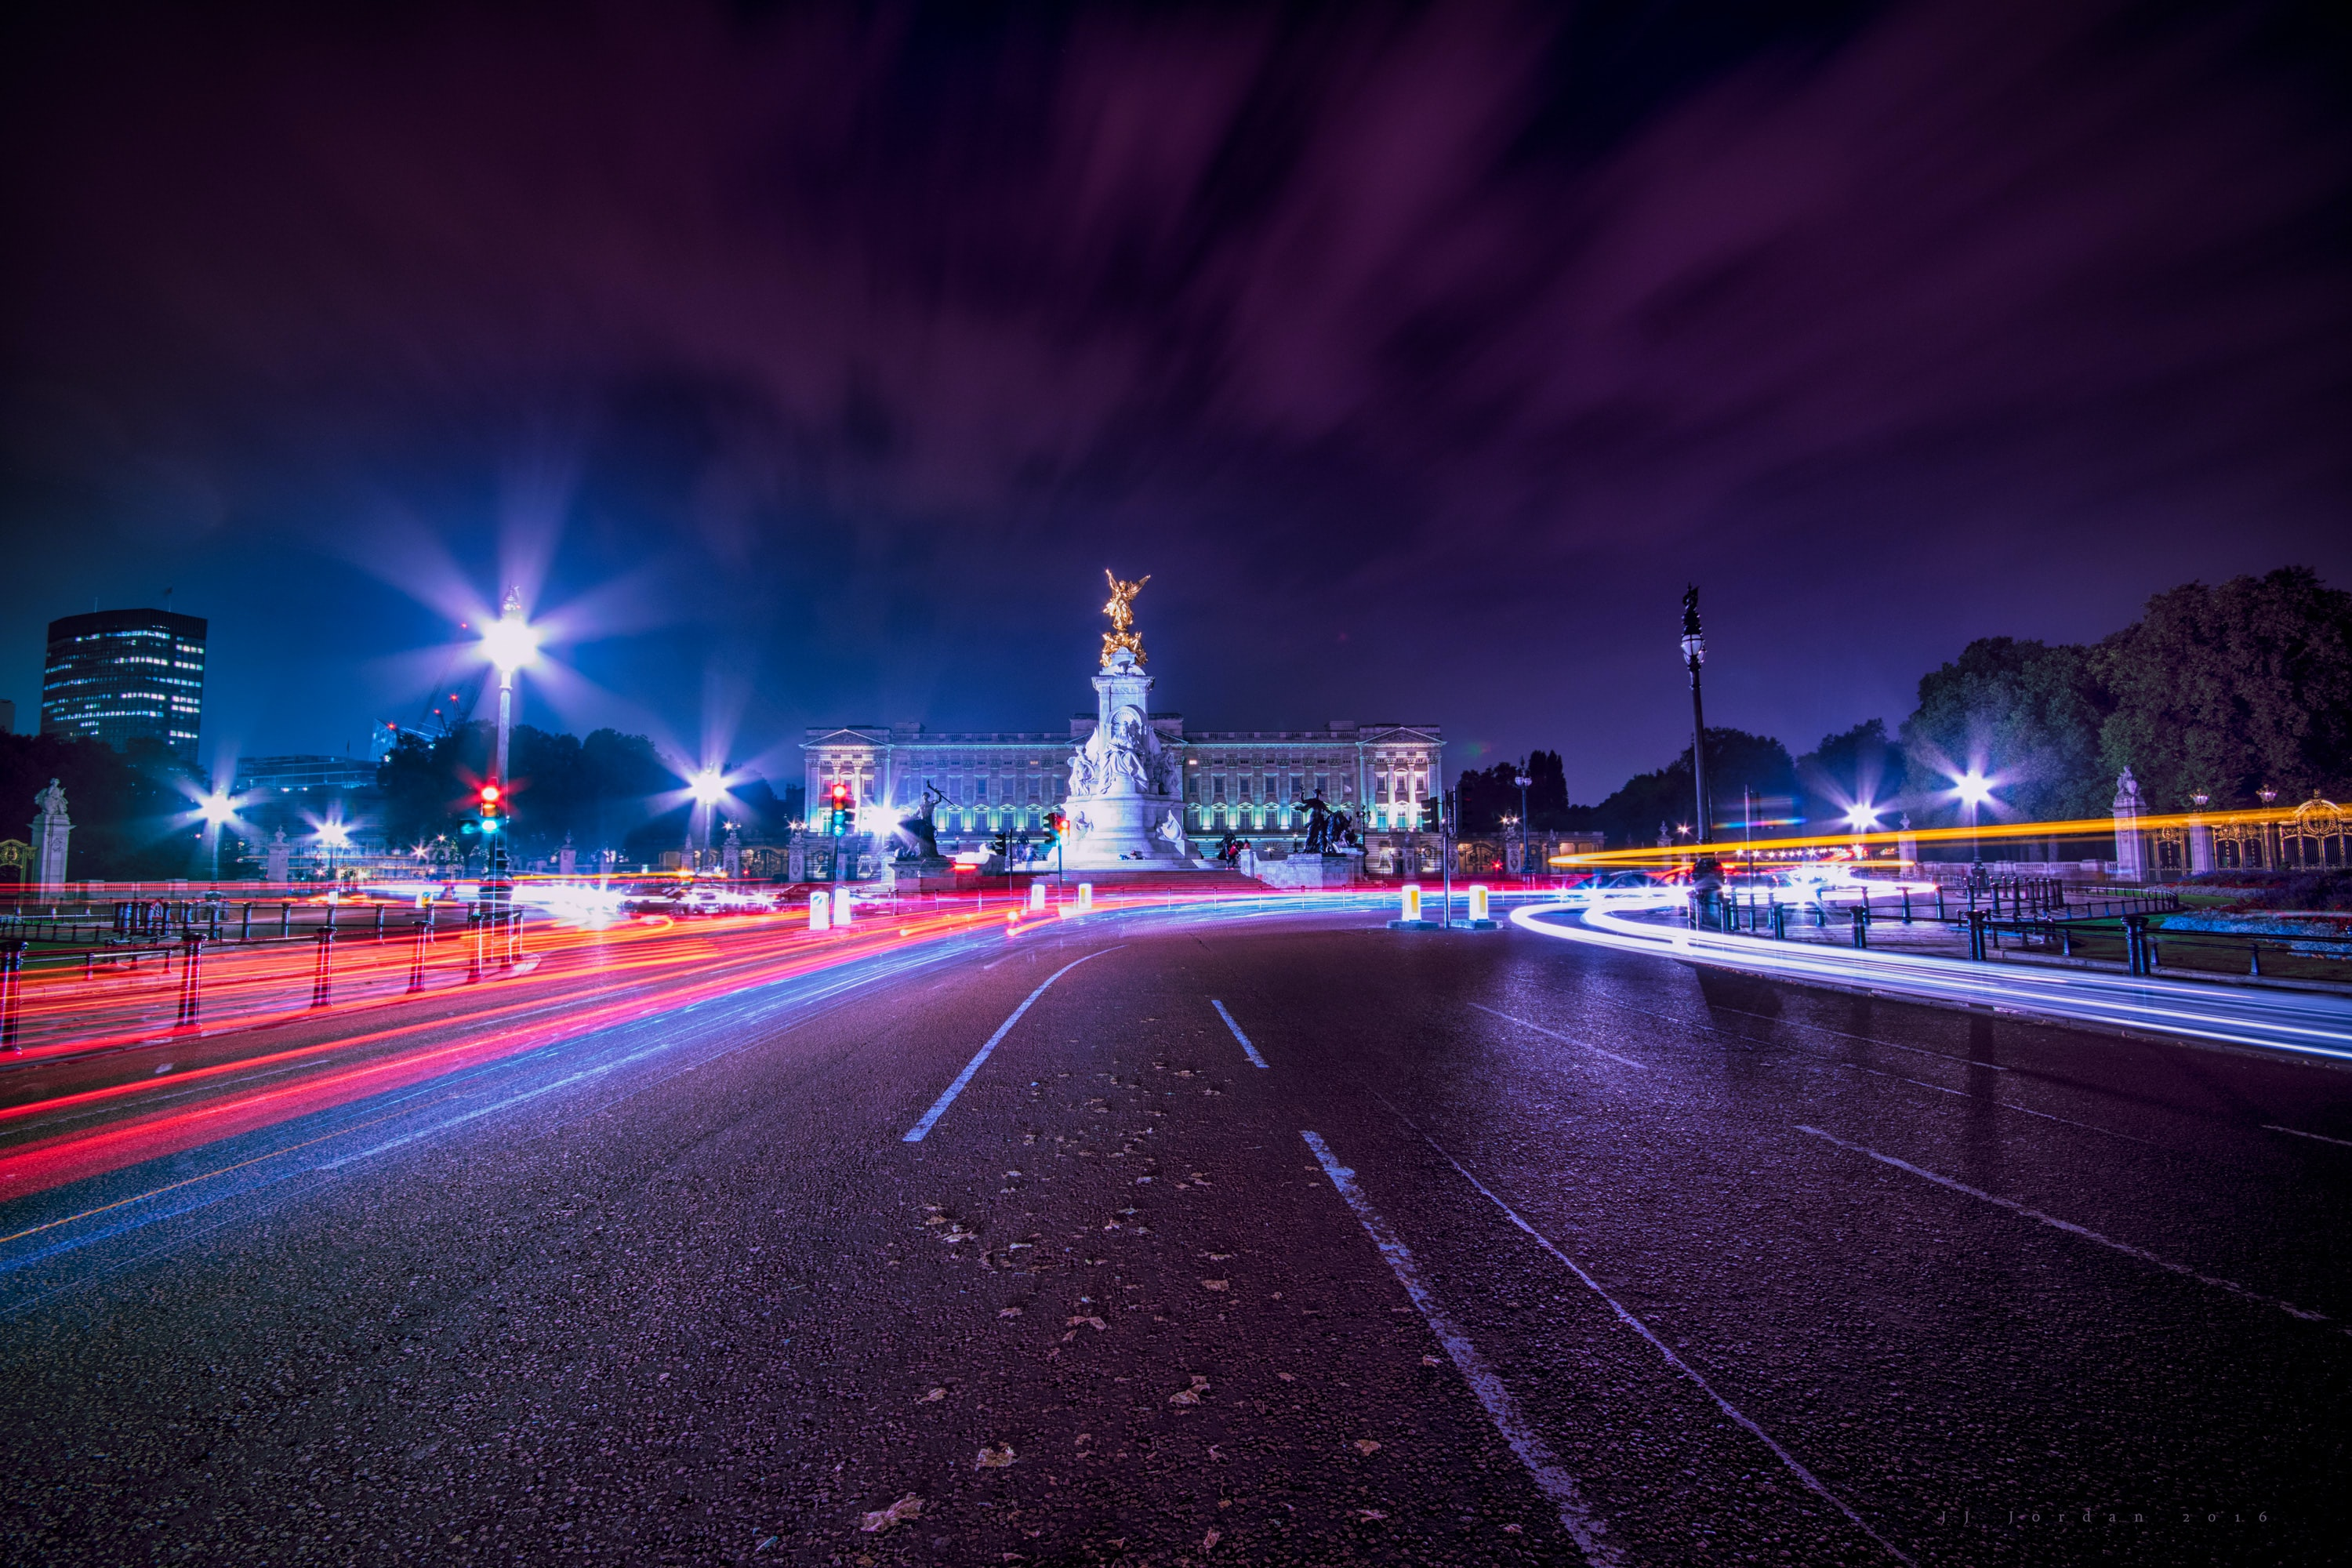 A colorful shot of Pall Mall Street in London, with colorful light trails after dark